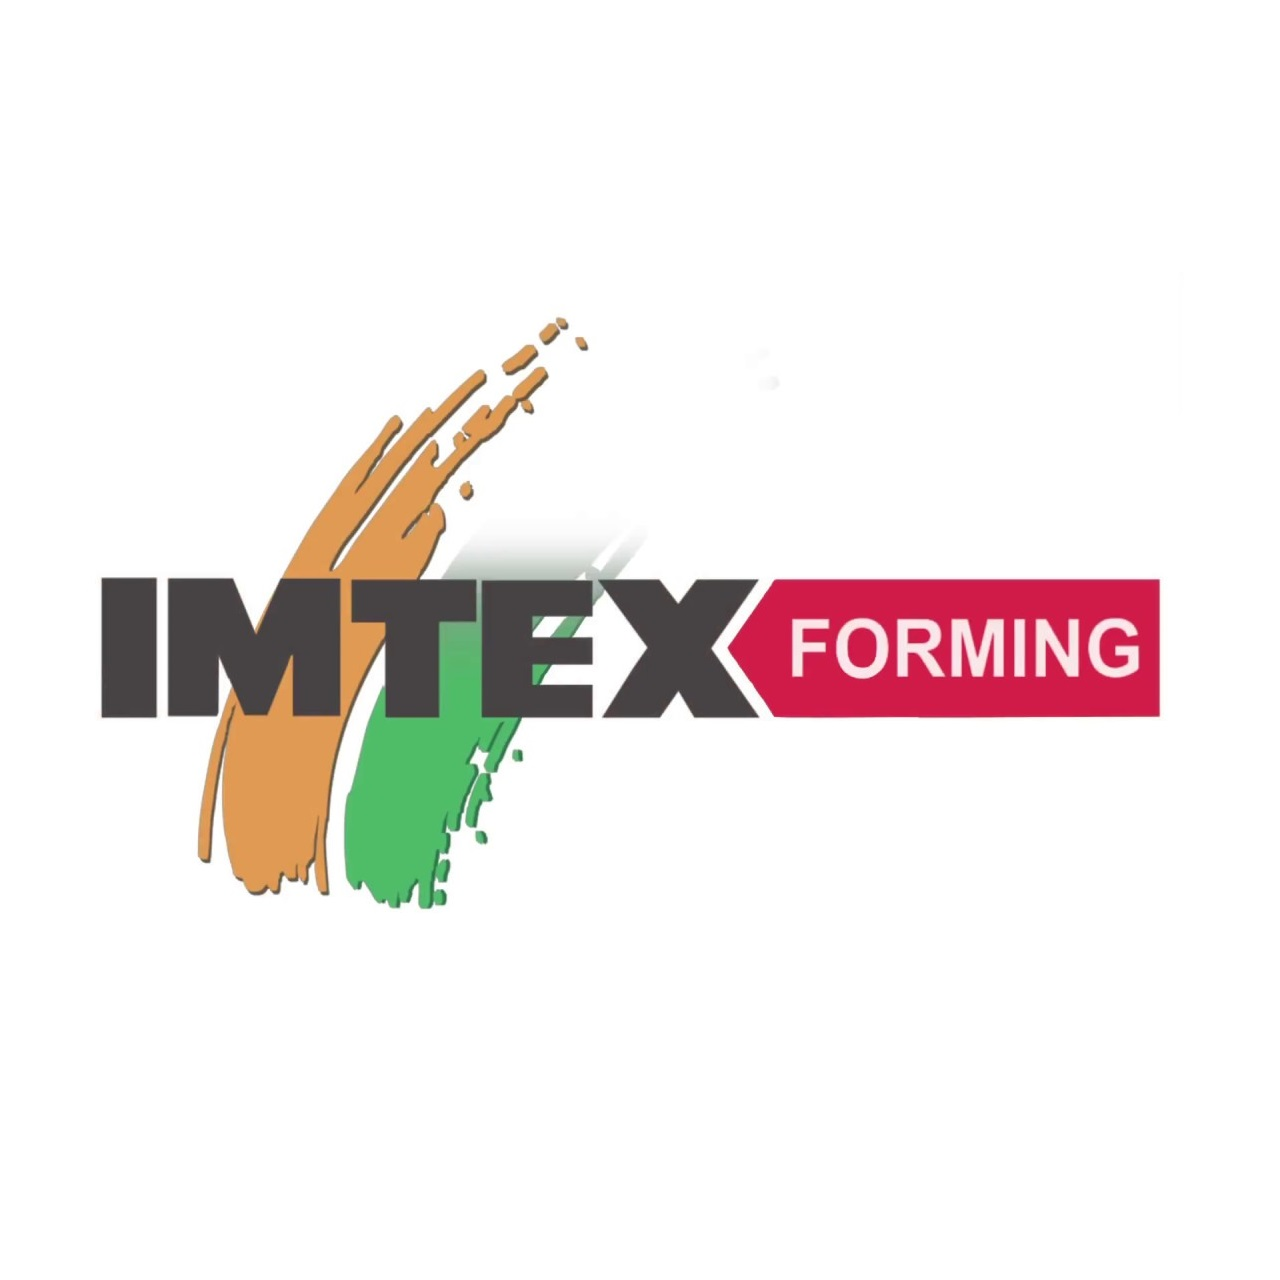 2020 IMTEX Forming&Tooltech (IMTEX Forming)